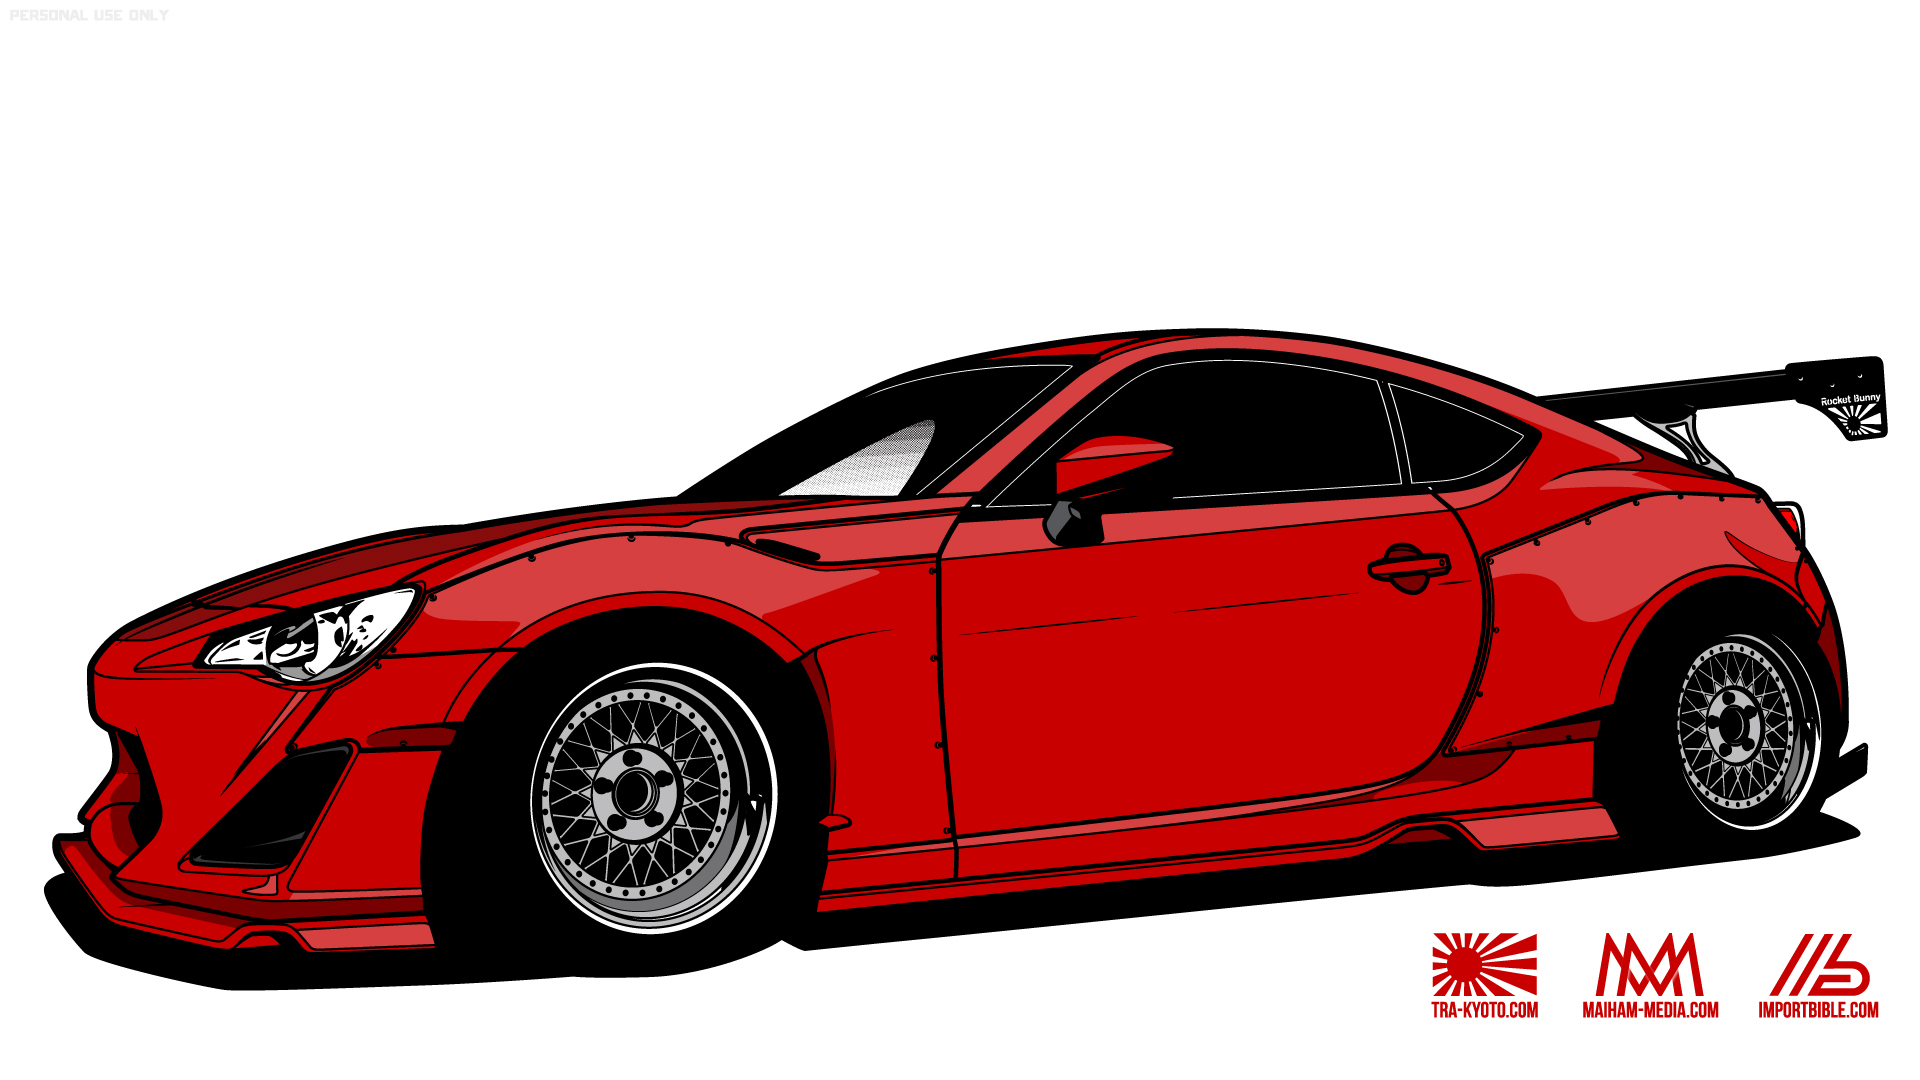 Import Bible Teams Up With Talented Media Group Maiham And Japanese Shop TRA Kyoto To Create High Resolution Wallpapers Of The Popular Wide Body